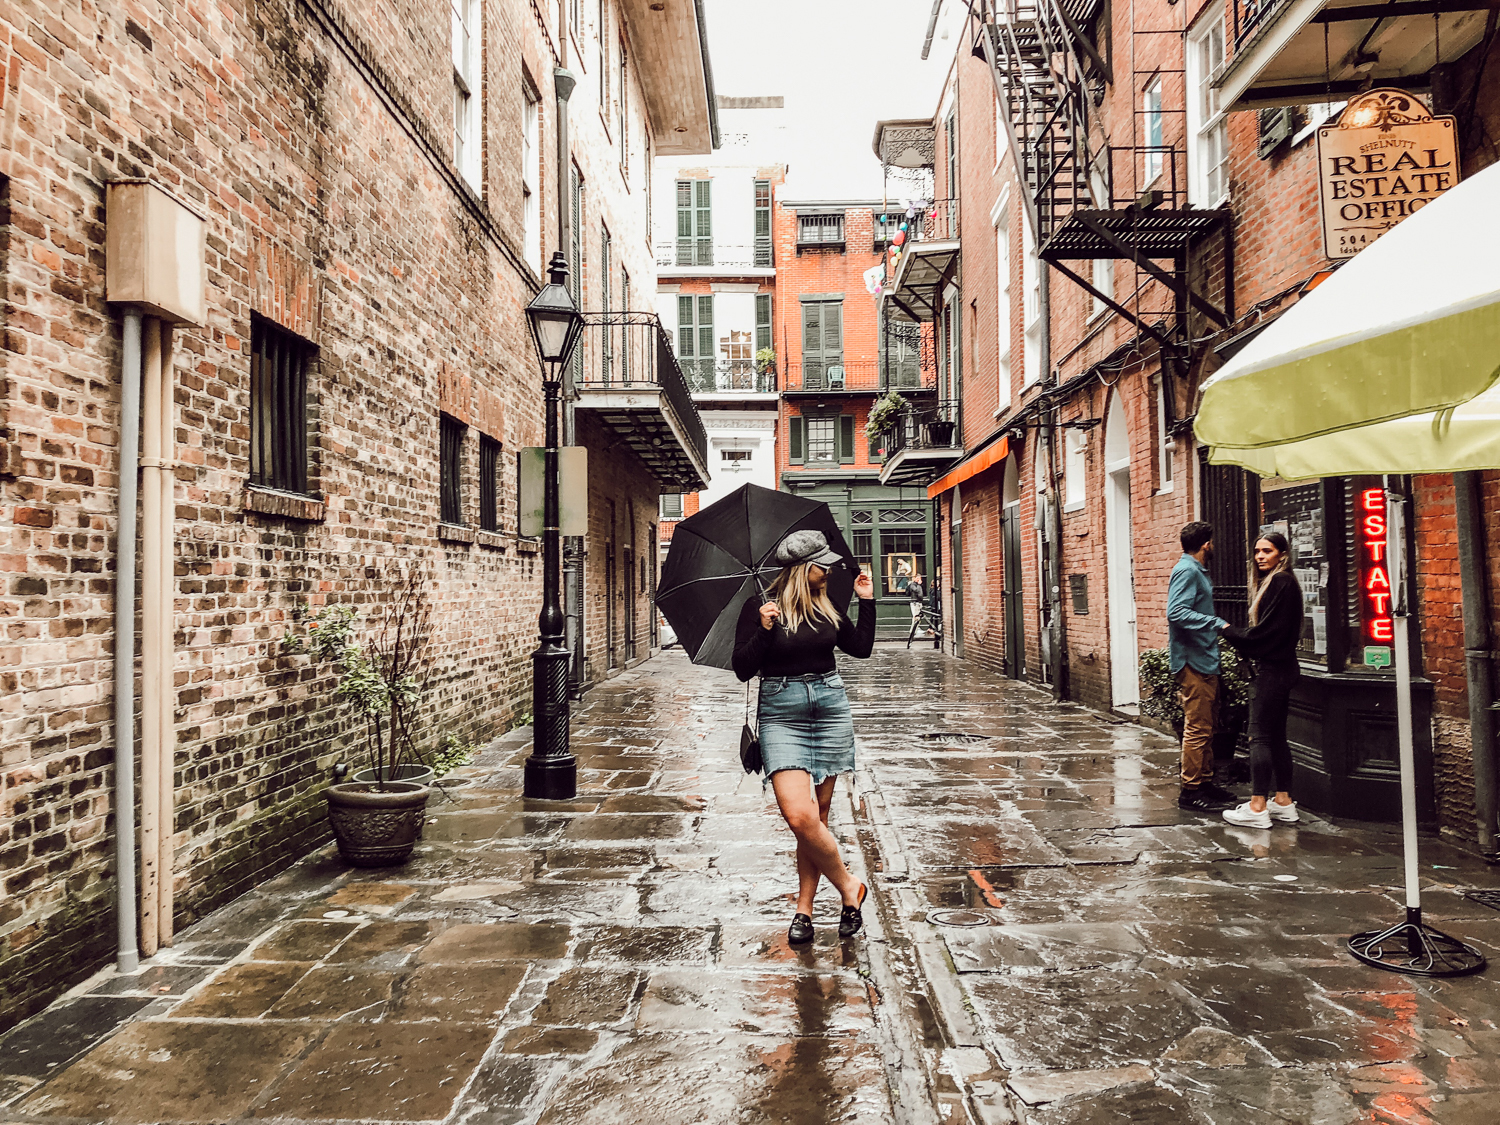 wide shot of Tessa in alley holding umbrella looking to the side